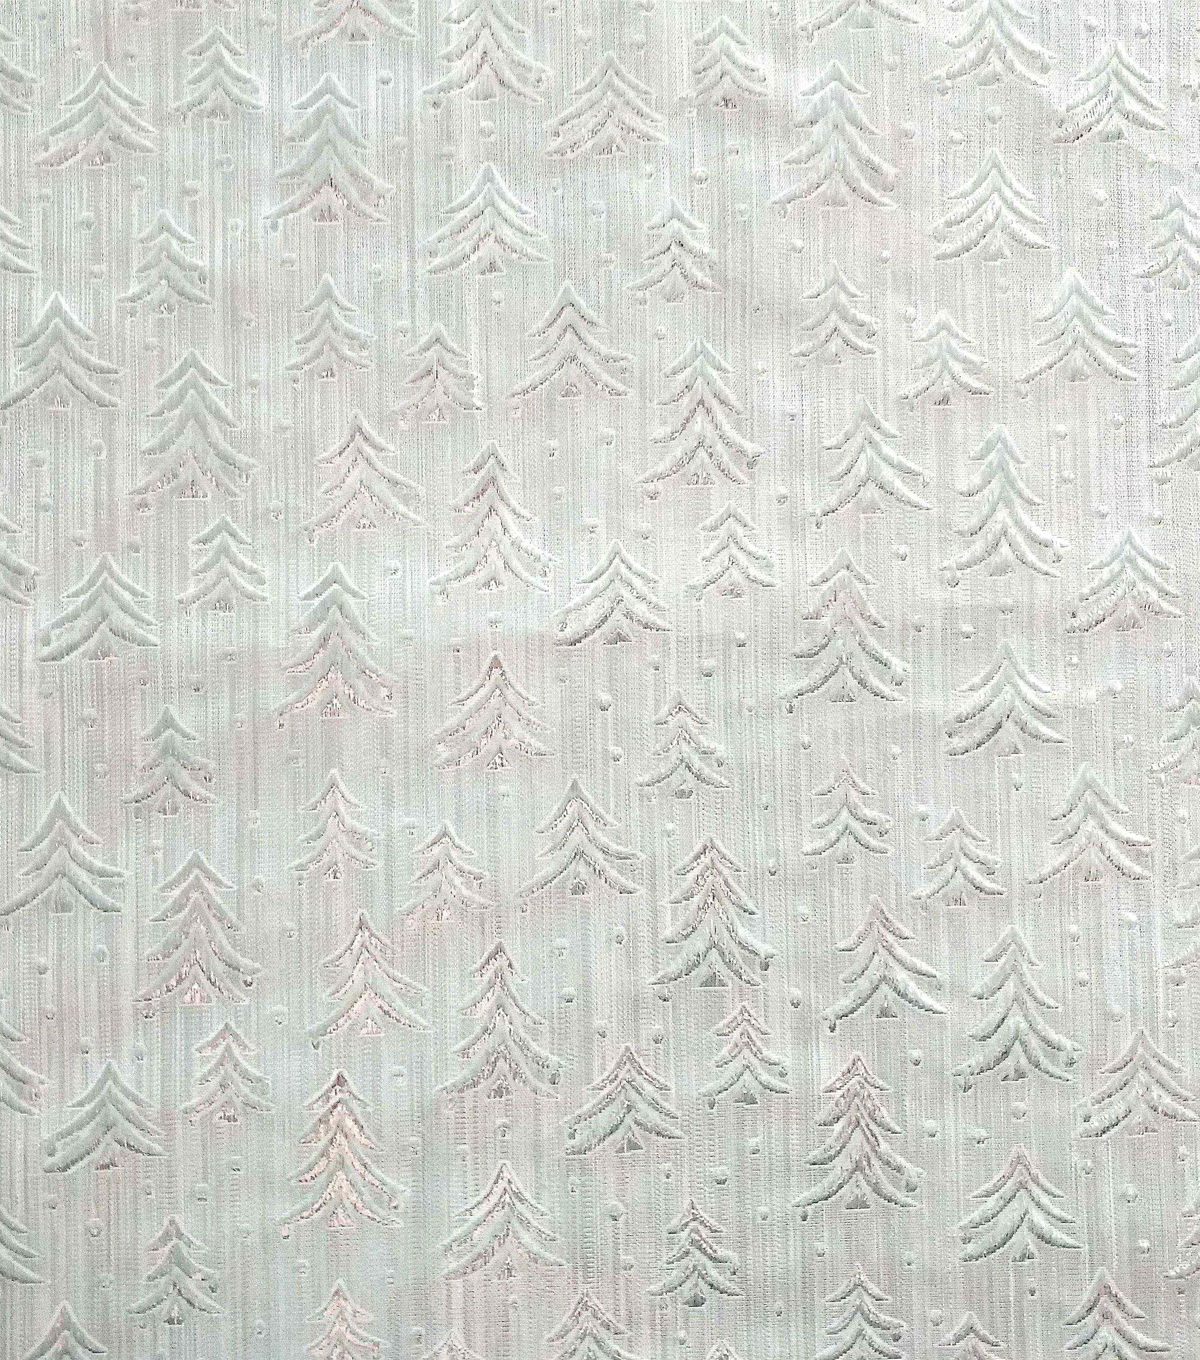 Sew Sweet Embossed Tree Lame Decorating Fabric 58\u0022-Silver